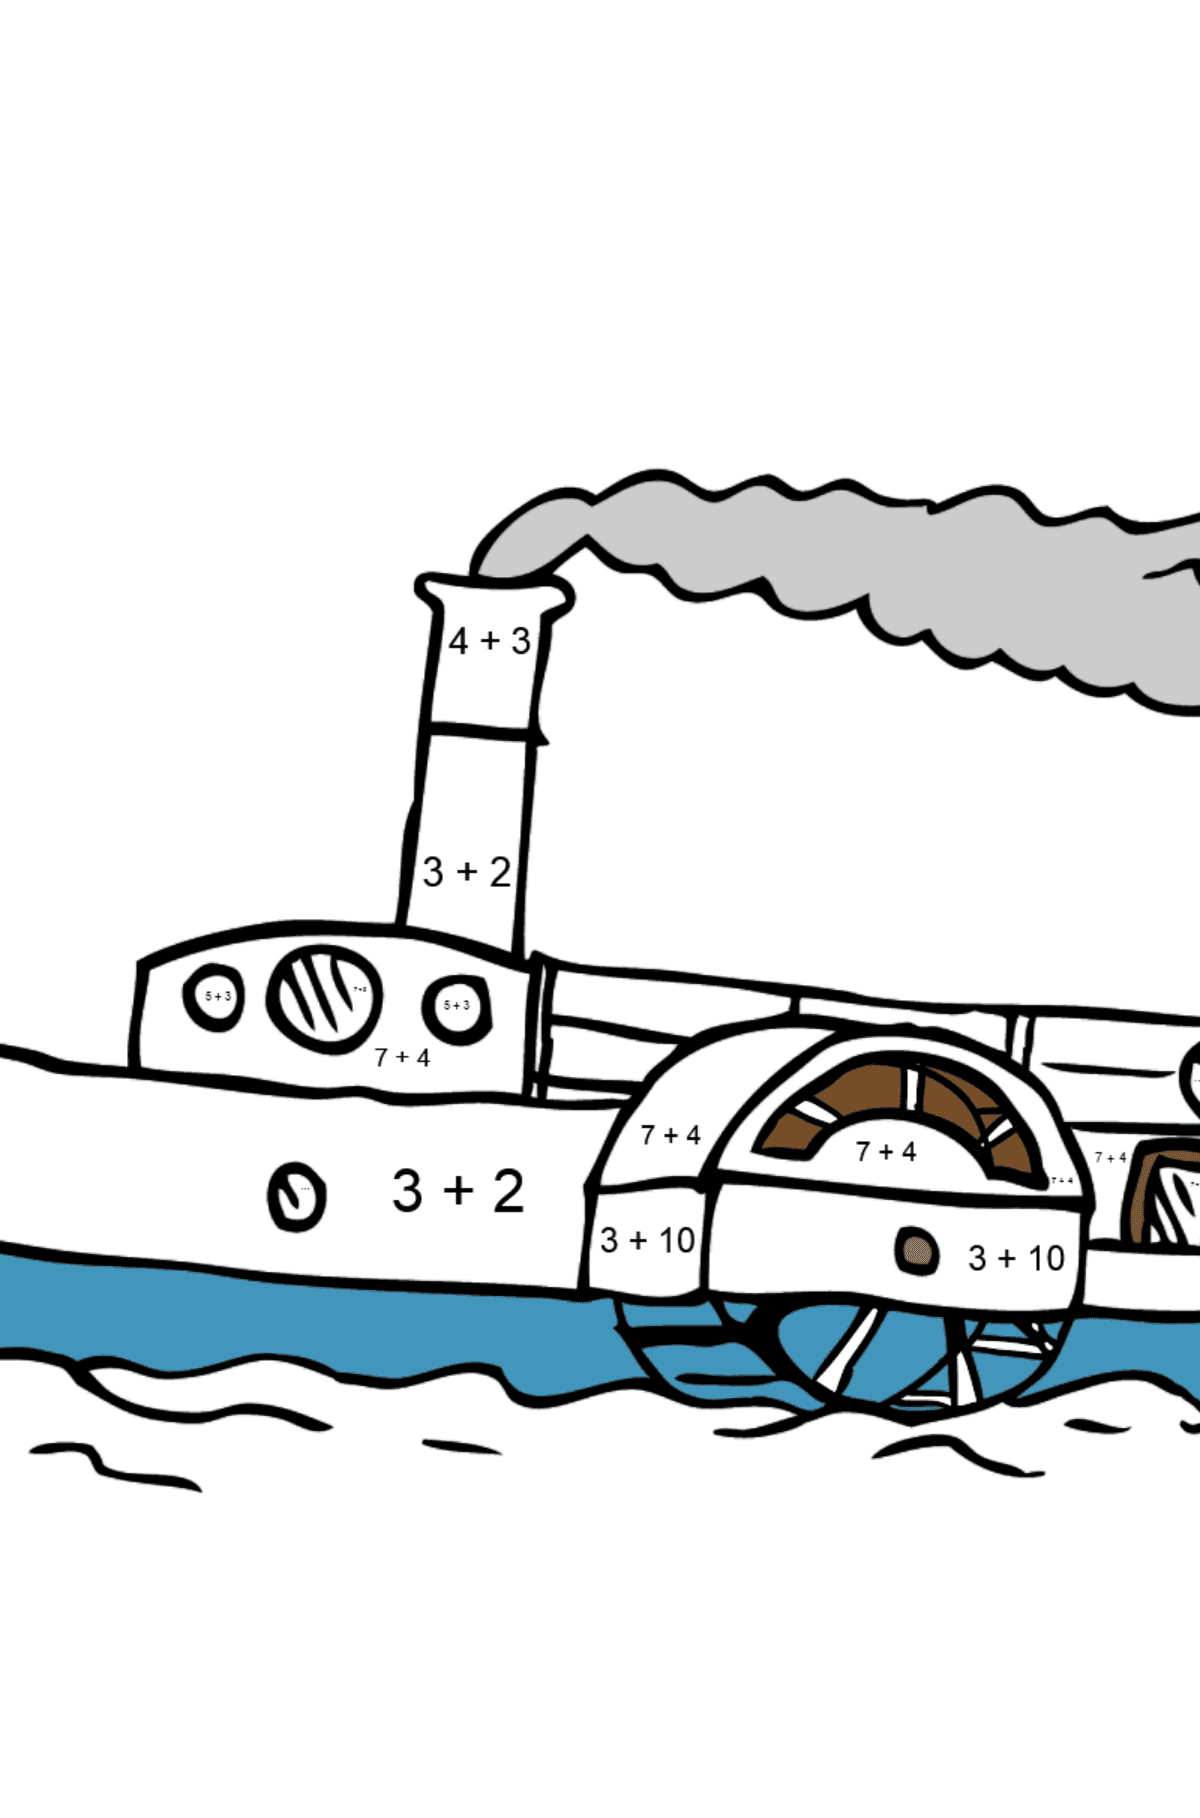 Coloring Page - A Ship with a Paddle Wheel - Math Coloring - Addition for Kids